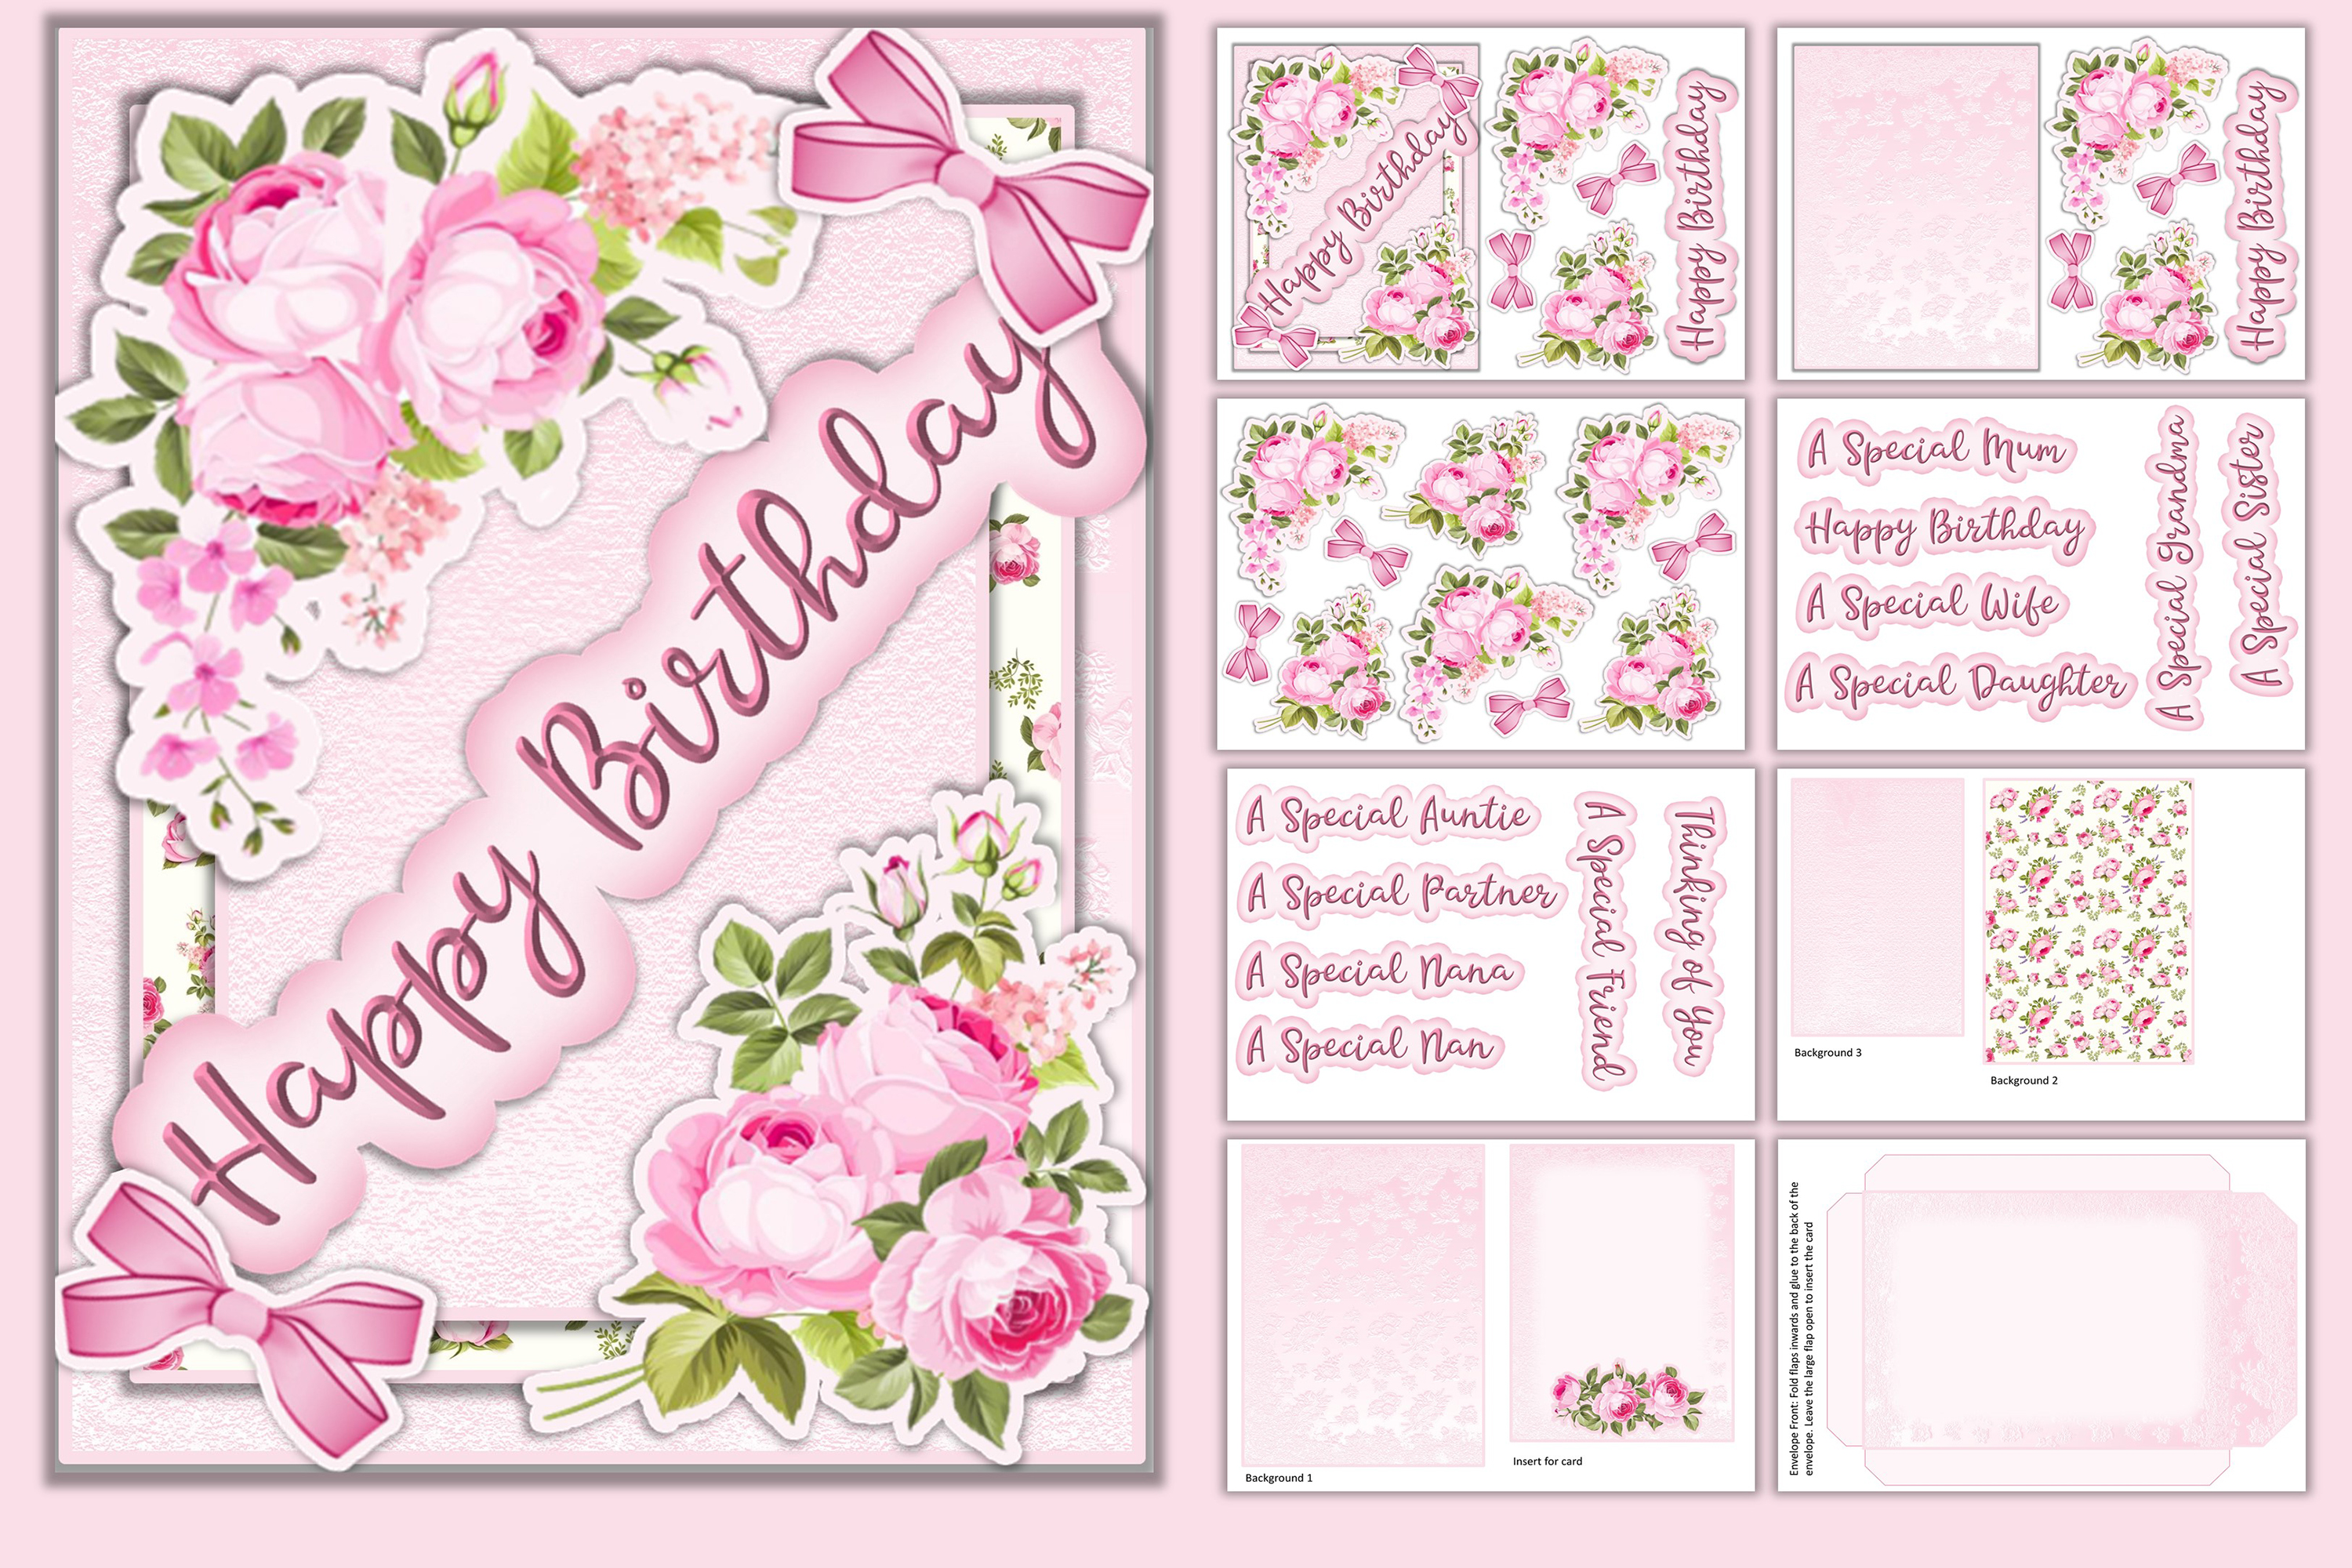 Download Free Birthday Card 12 Tags Insert Envelope Graphic By The Paper Princess Creative Fabrica for Cricut Explore, Silhouette and other cutting machines.